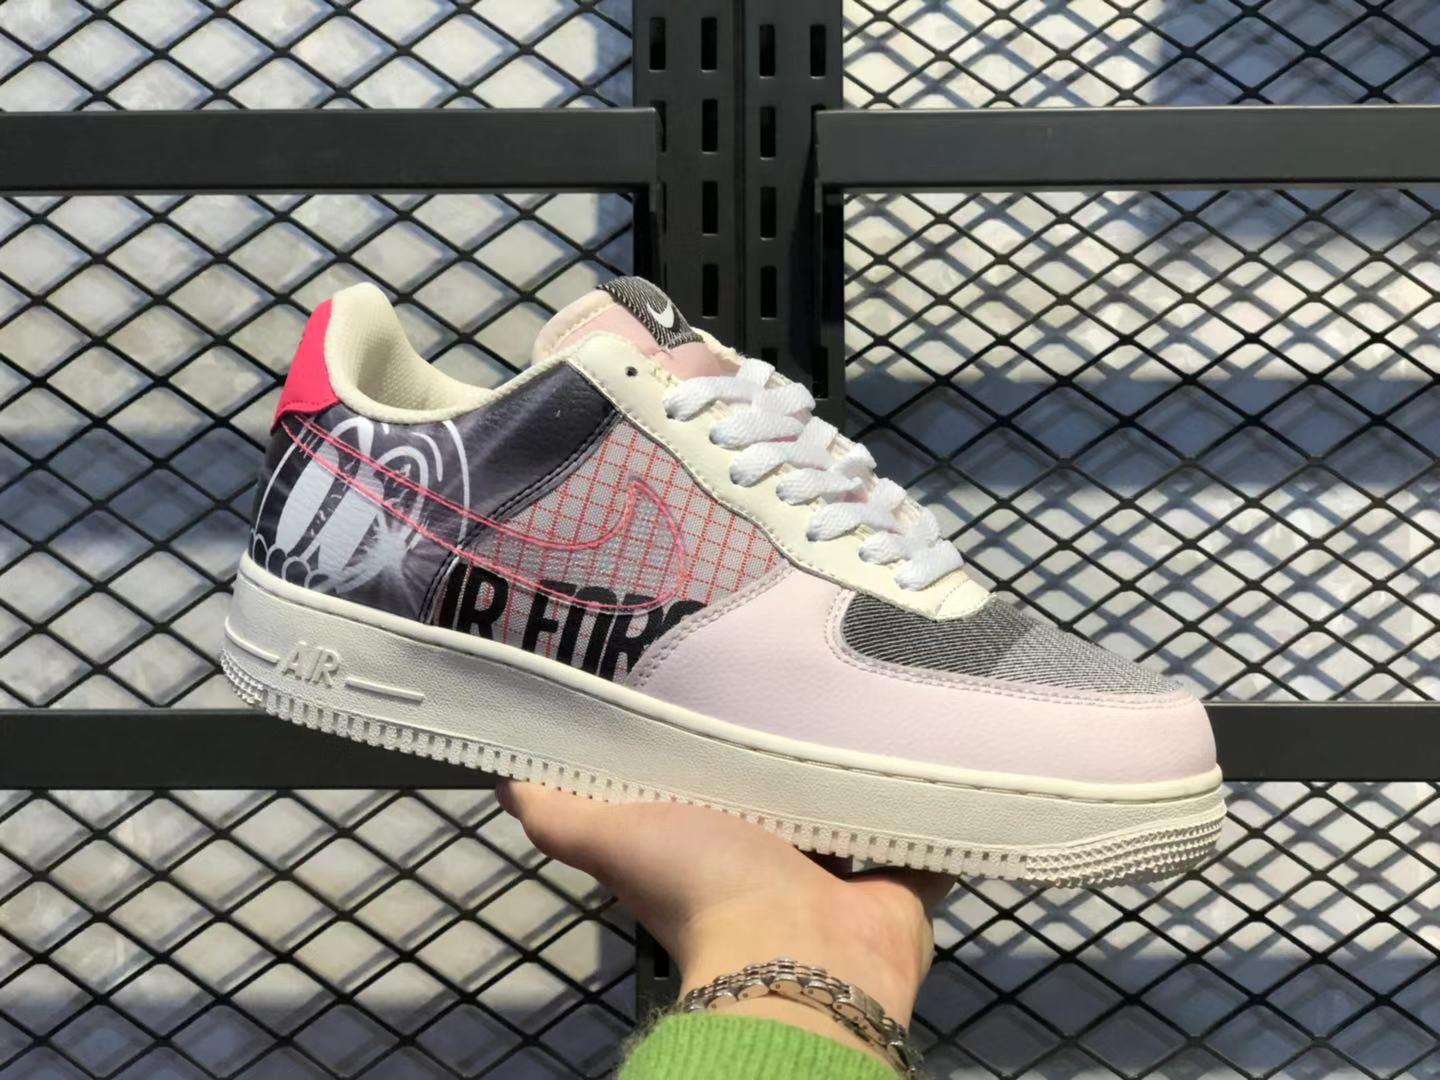 Best Sell Nike Air Force 1'07 Light Soft Pink/Sail CI0066-600 Casual Sneakers